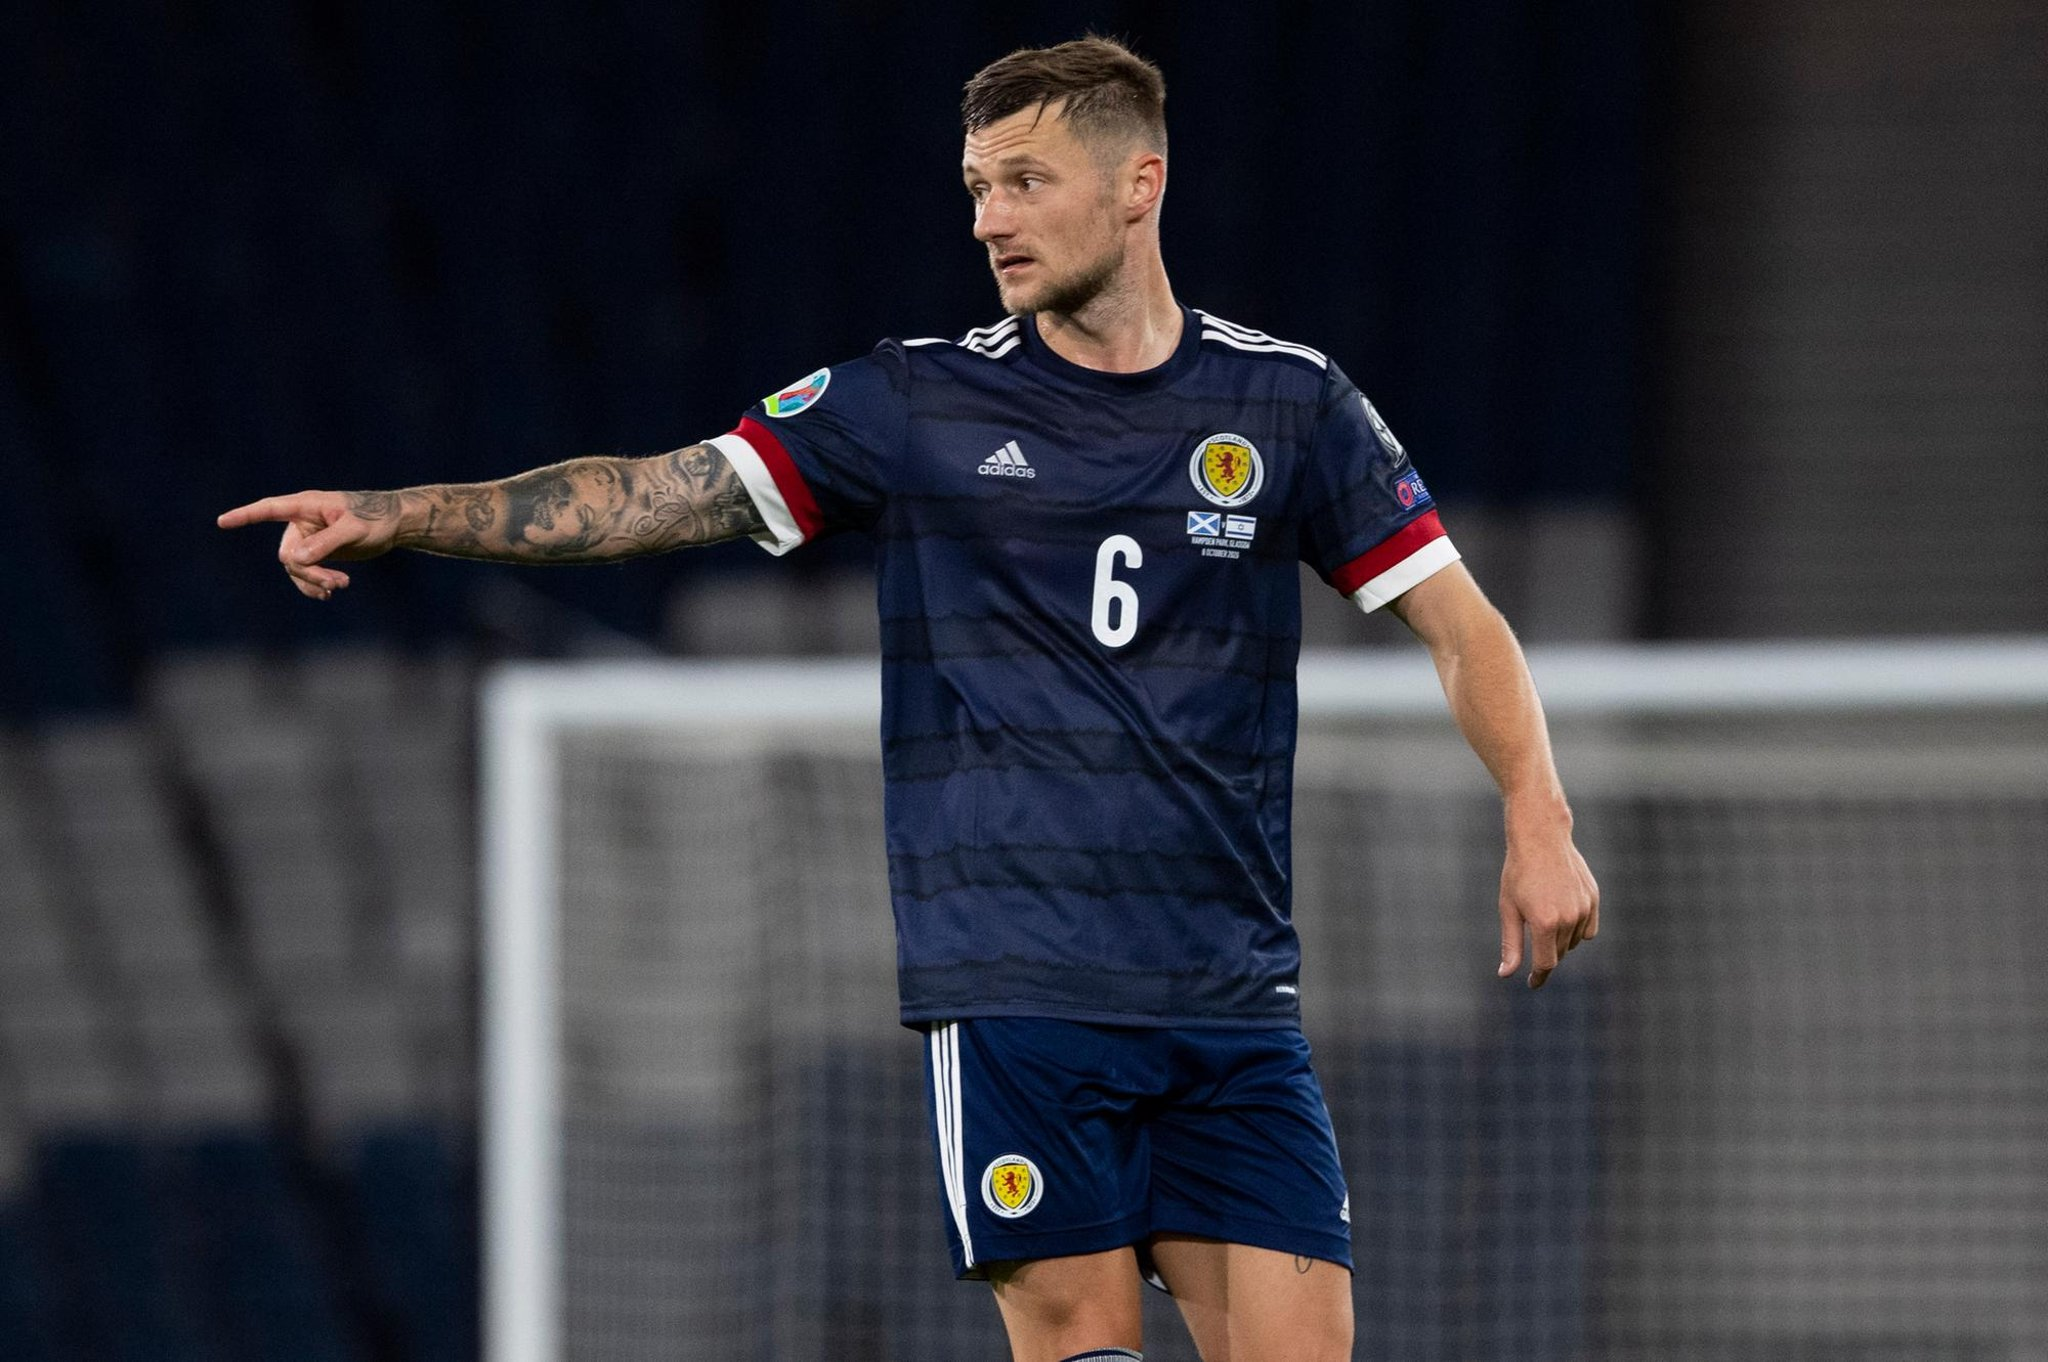 Scotland and Leeds United defender Liam Cooper on his unique status, Covid recovery and 'mental' year